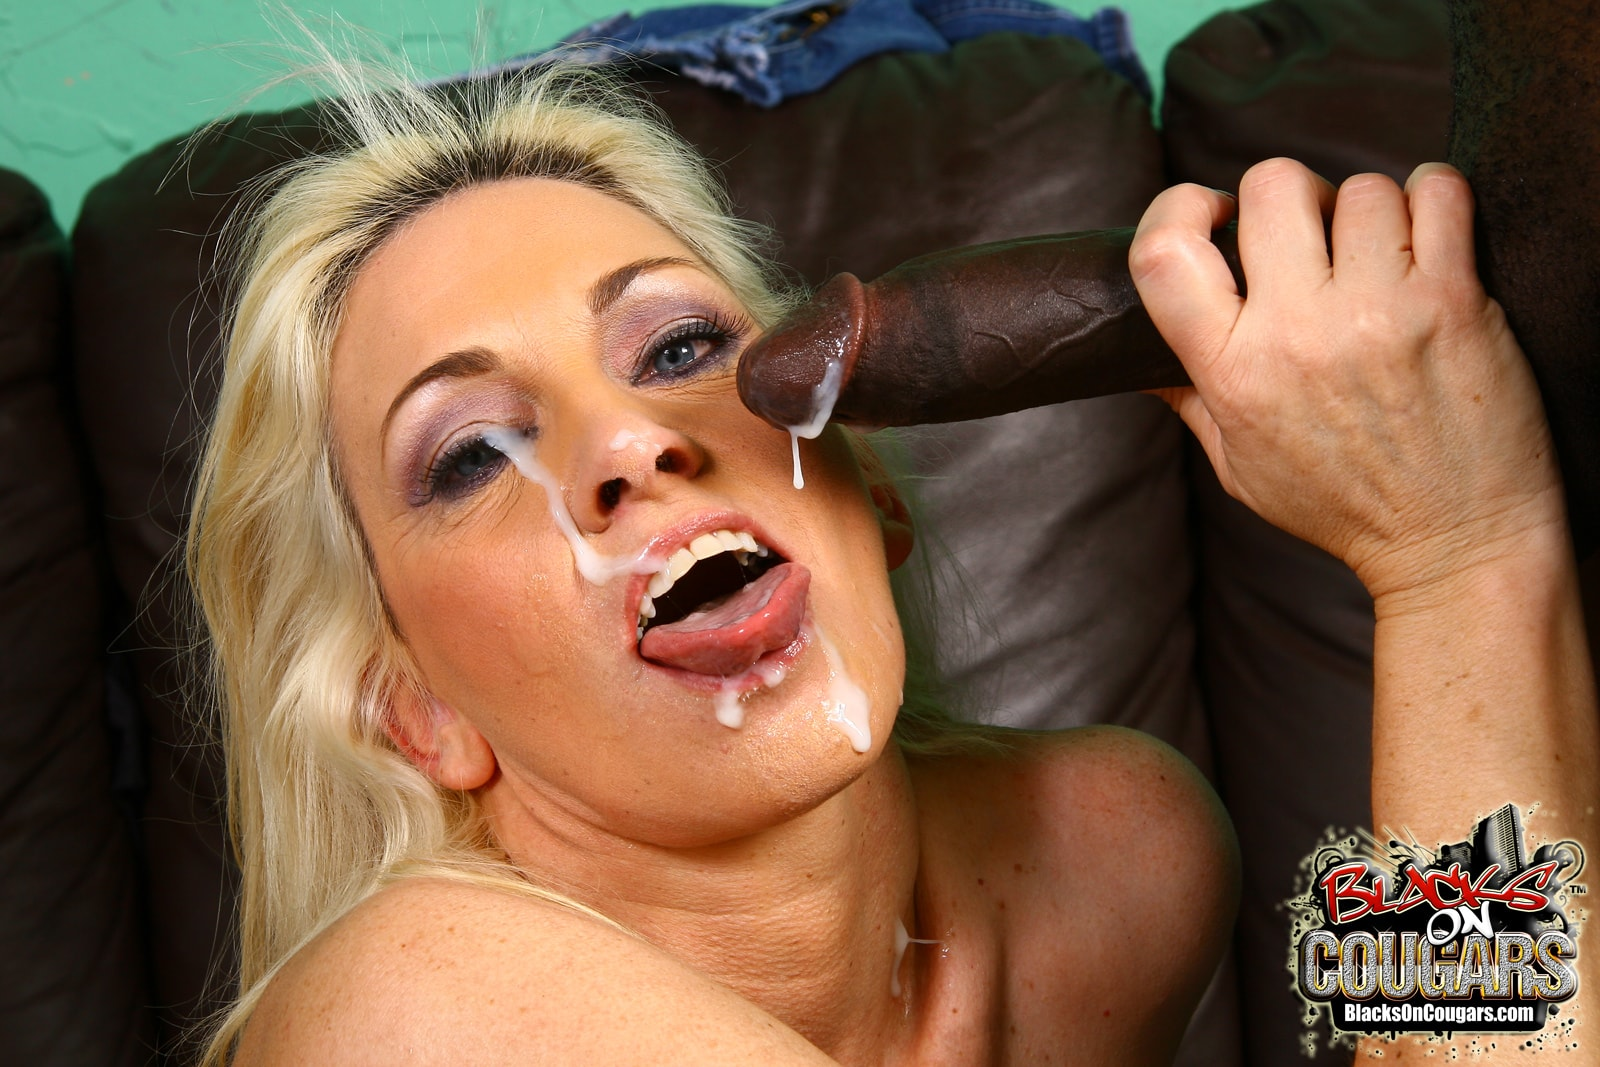 Dogfart '- Blacks On Cougars' starring Cala Craves (Photo 30)